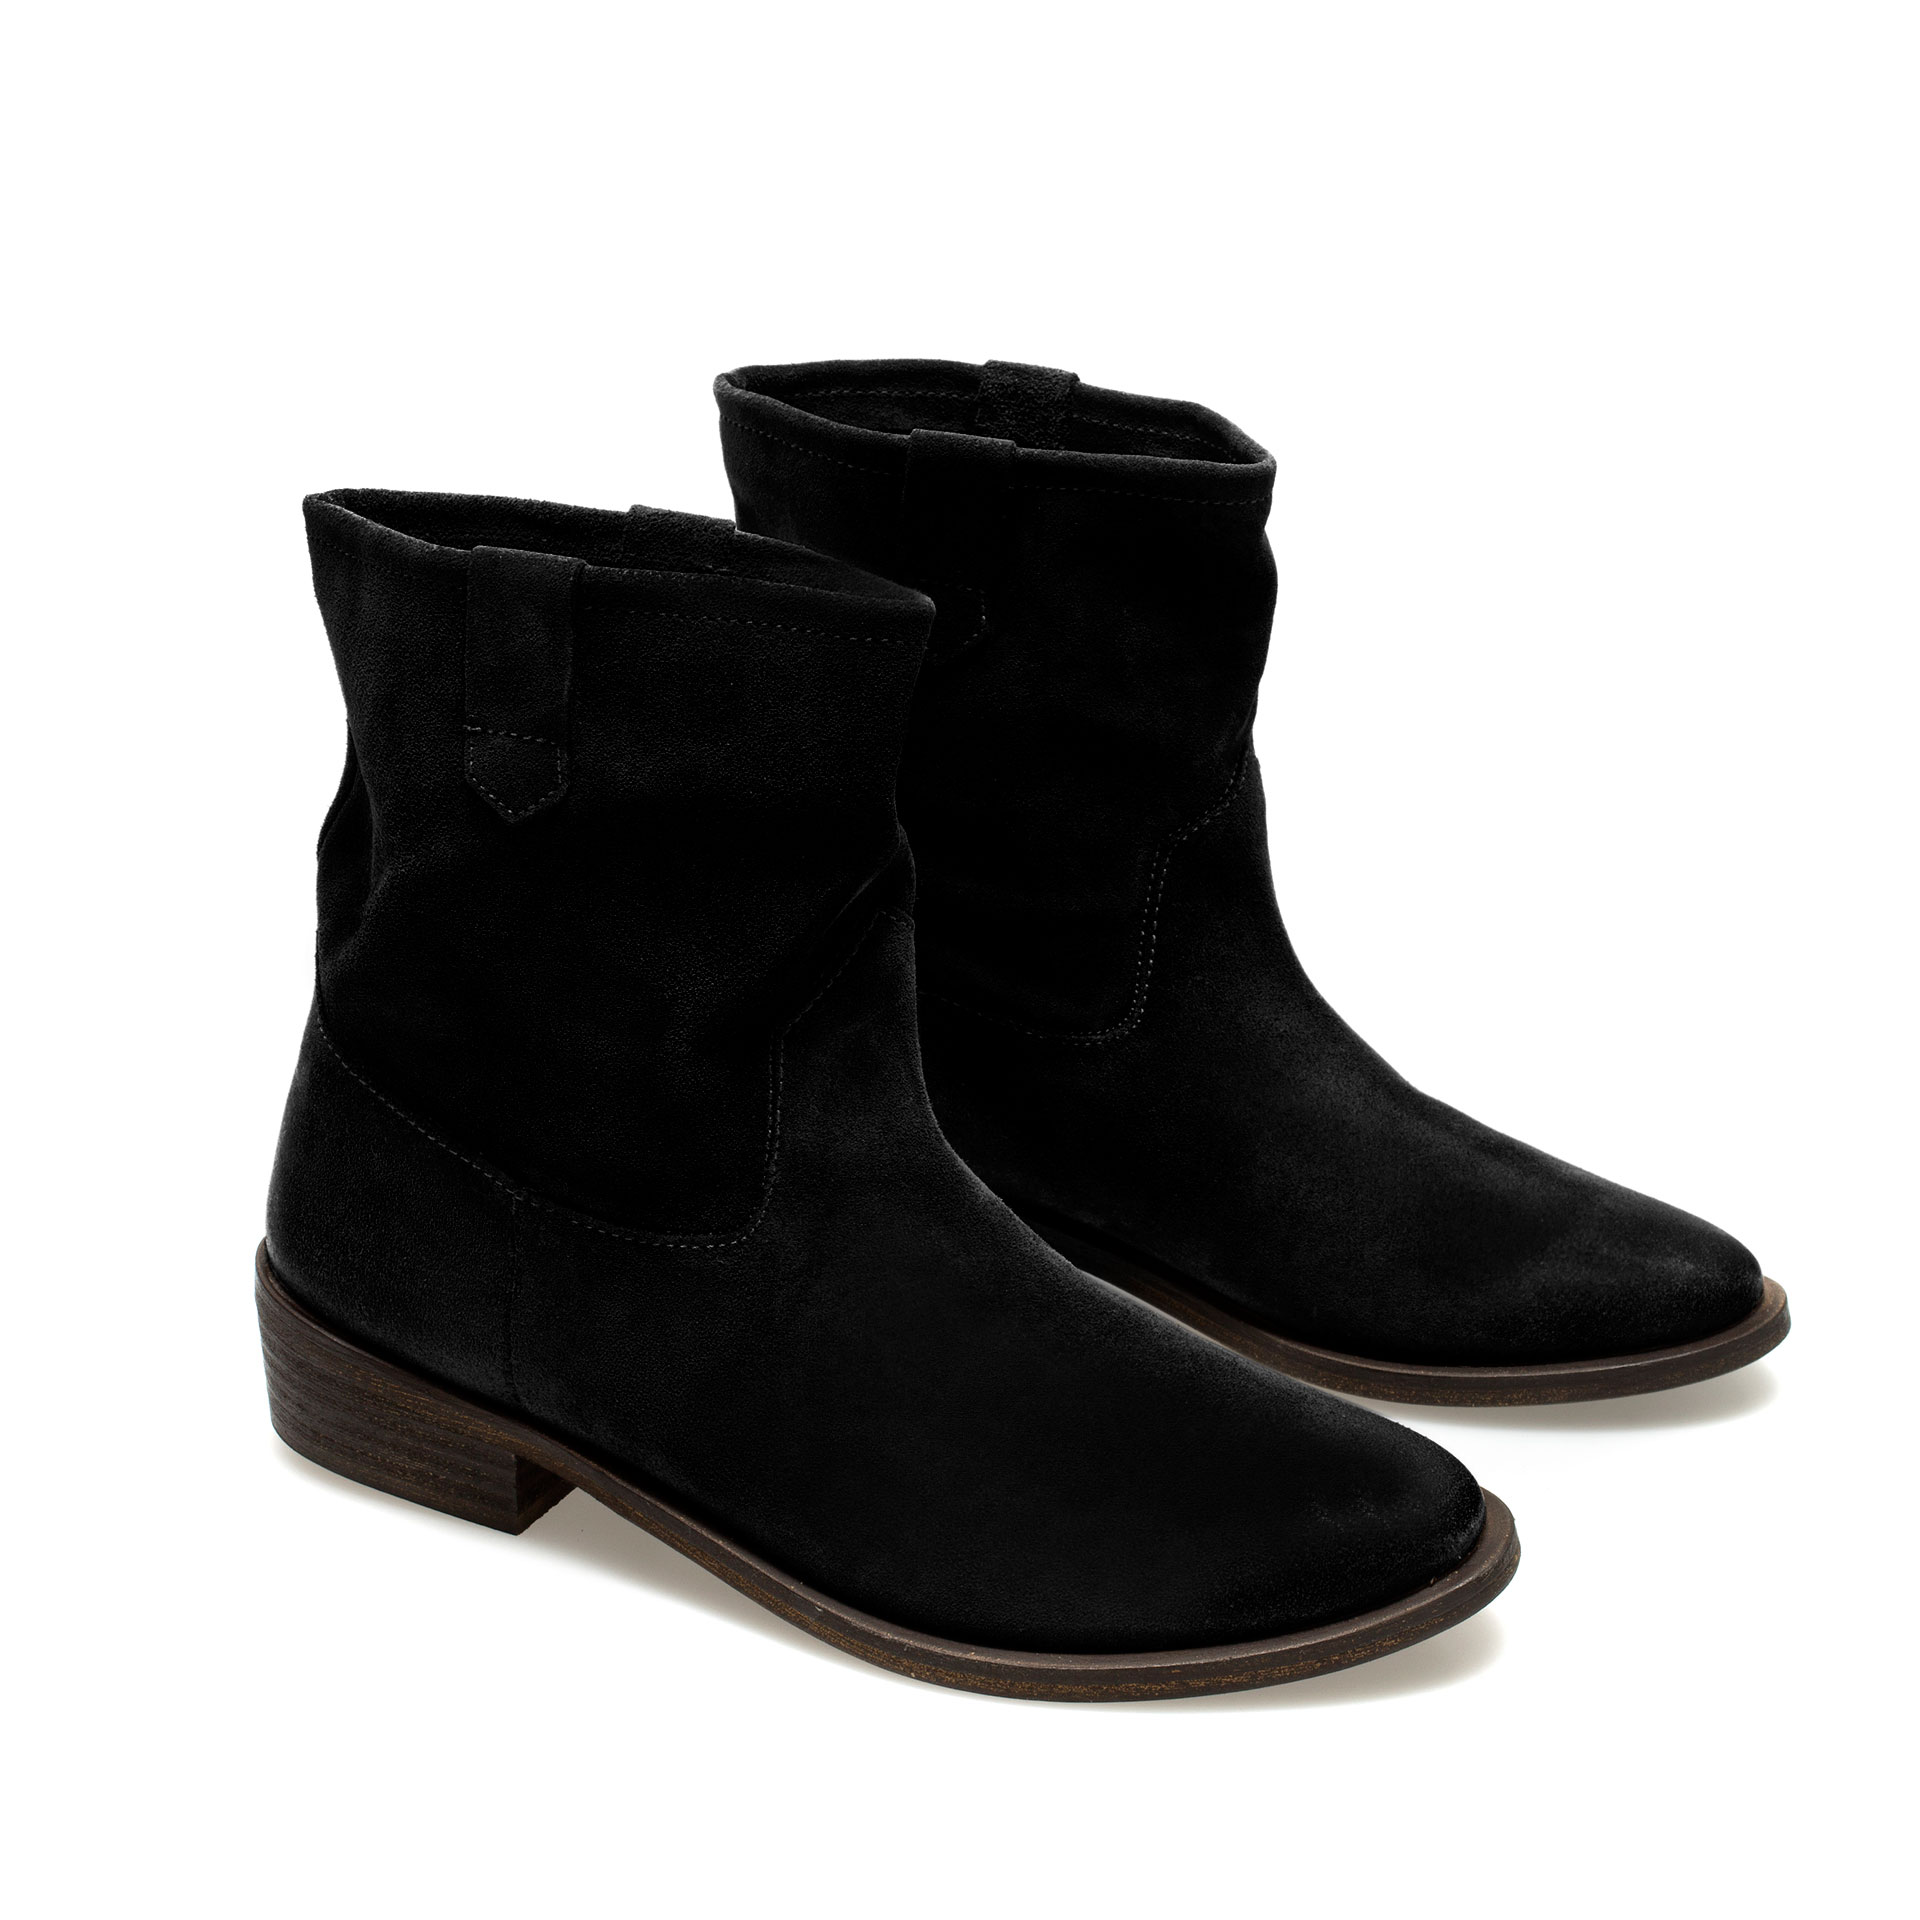 Zara Flat Cowboy Ankle Boot in Black | Lyst